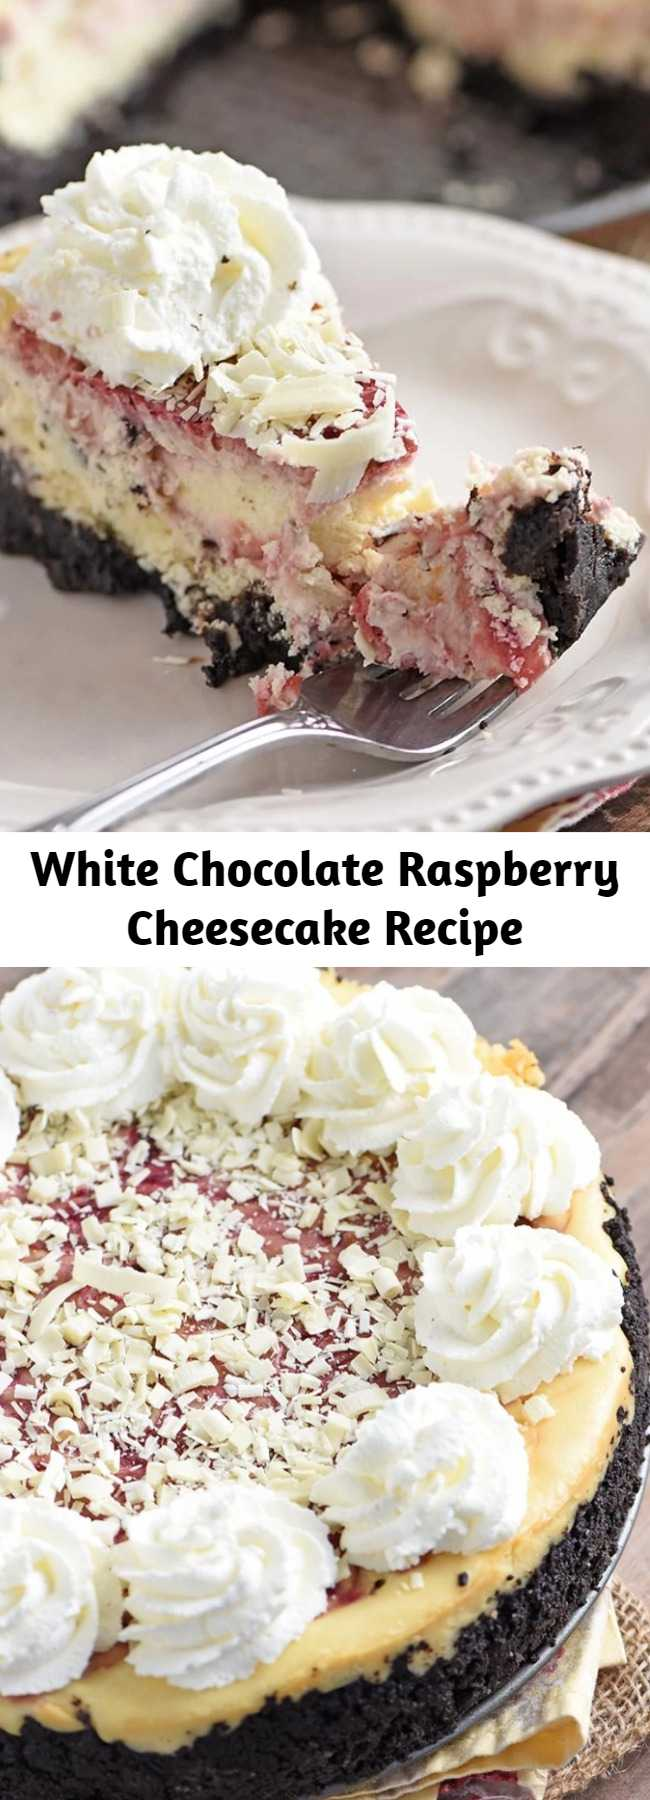 White Chocolate Raspberry Cheesecake Recipe - Make Olive Garden's white chocolate raspberry cheesecake at home. Who doesn't love a decadent homemade dessert with a raspberry swirl and Oreo cookie crust? #cheesecake #OliveGarden #copycatrecipes #dessertrecipes